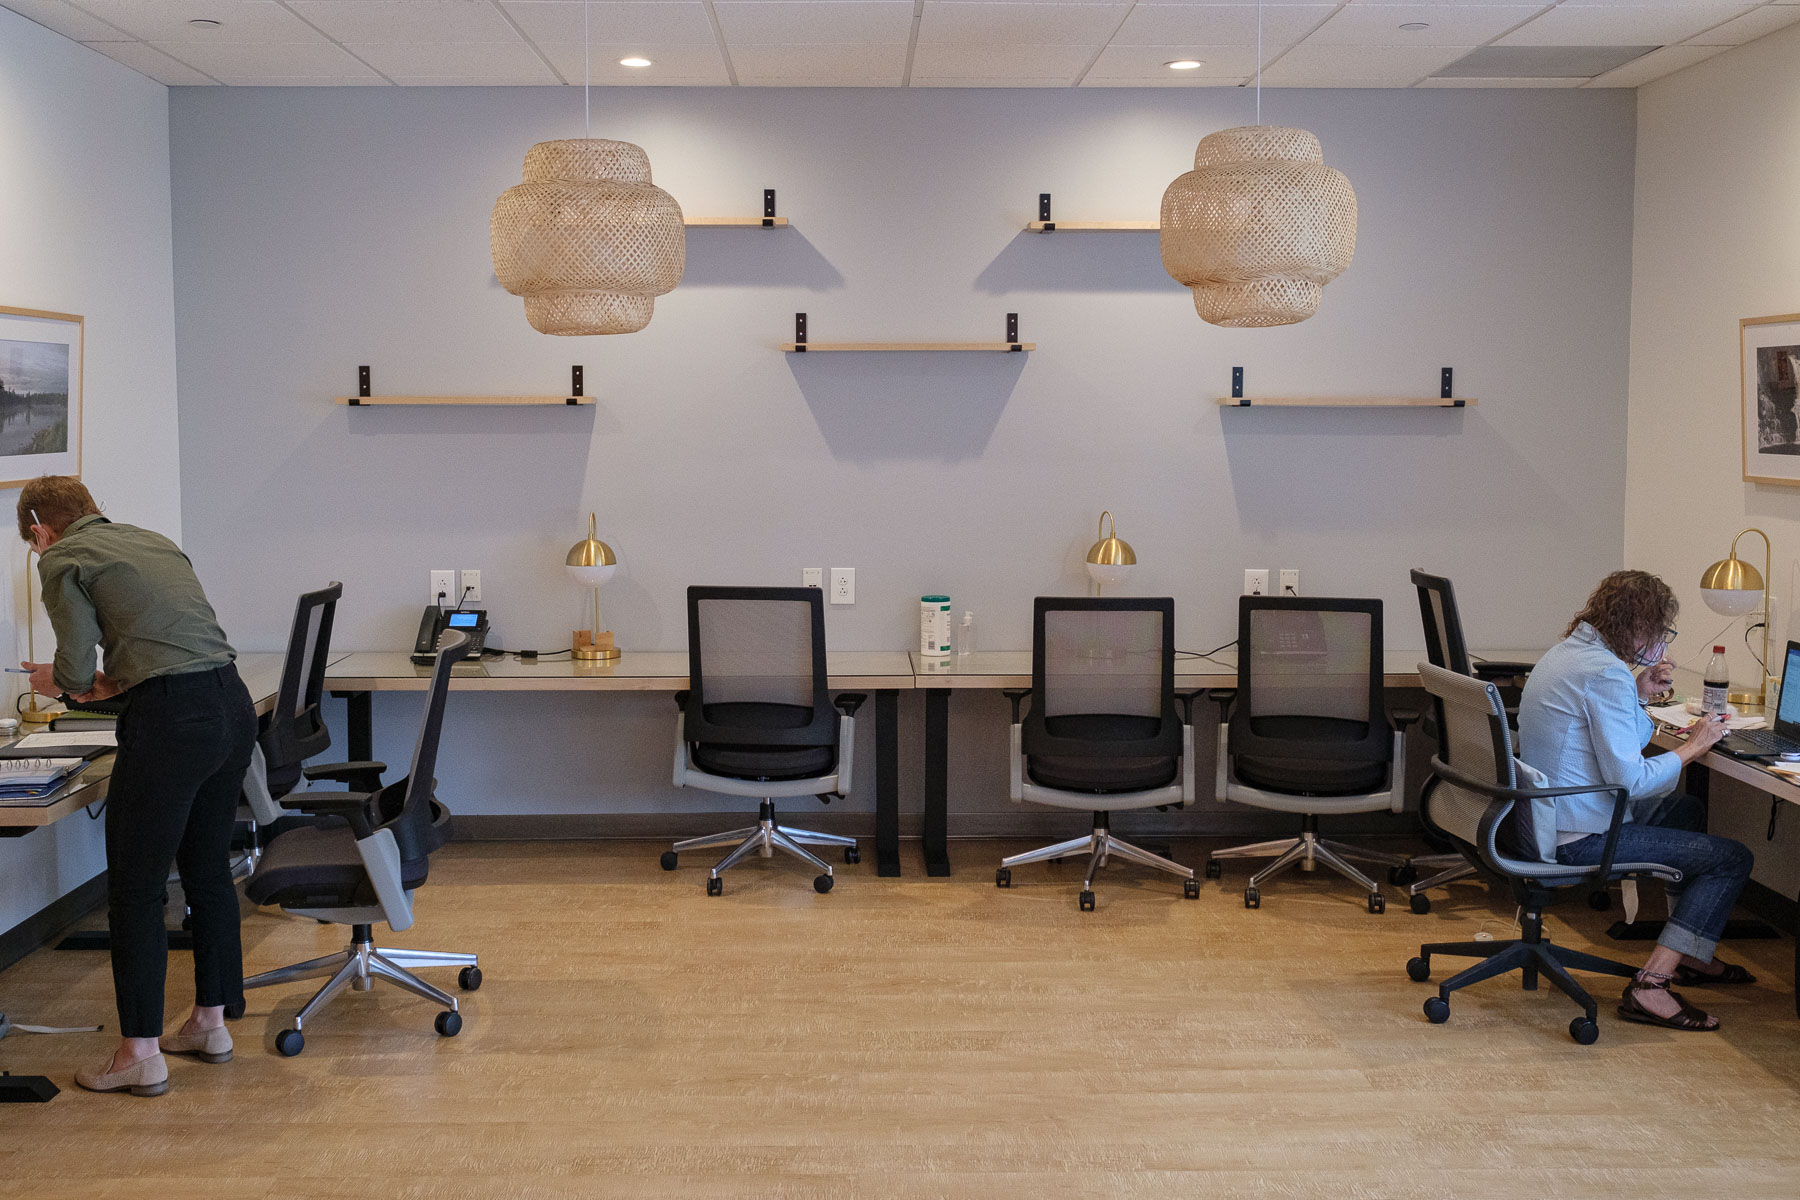 Two people work in a large room with phones, lamps, a laptop and other office materials.